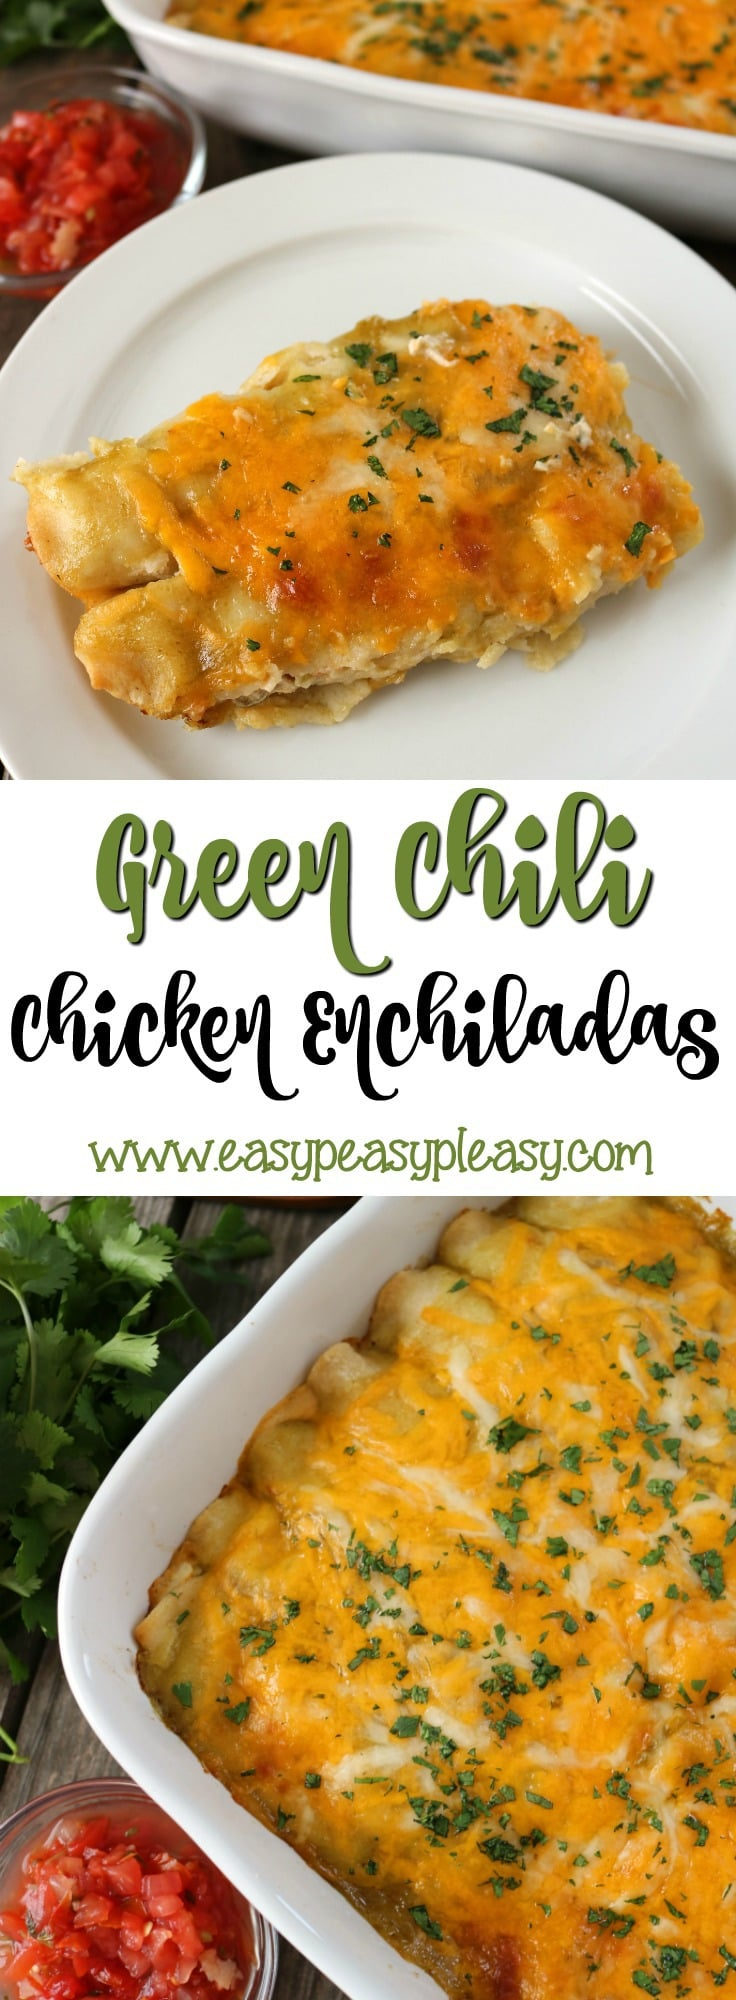 Looking for a dinner your whole family will love These Green Chili Chicken Enchiladas will hit the spot. Perfect for weeknight, make ahead or as a freezer meal.